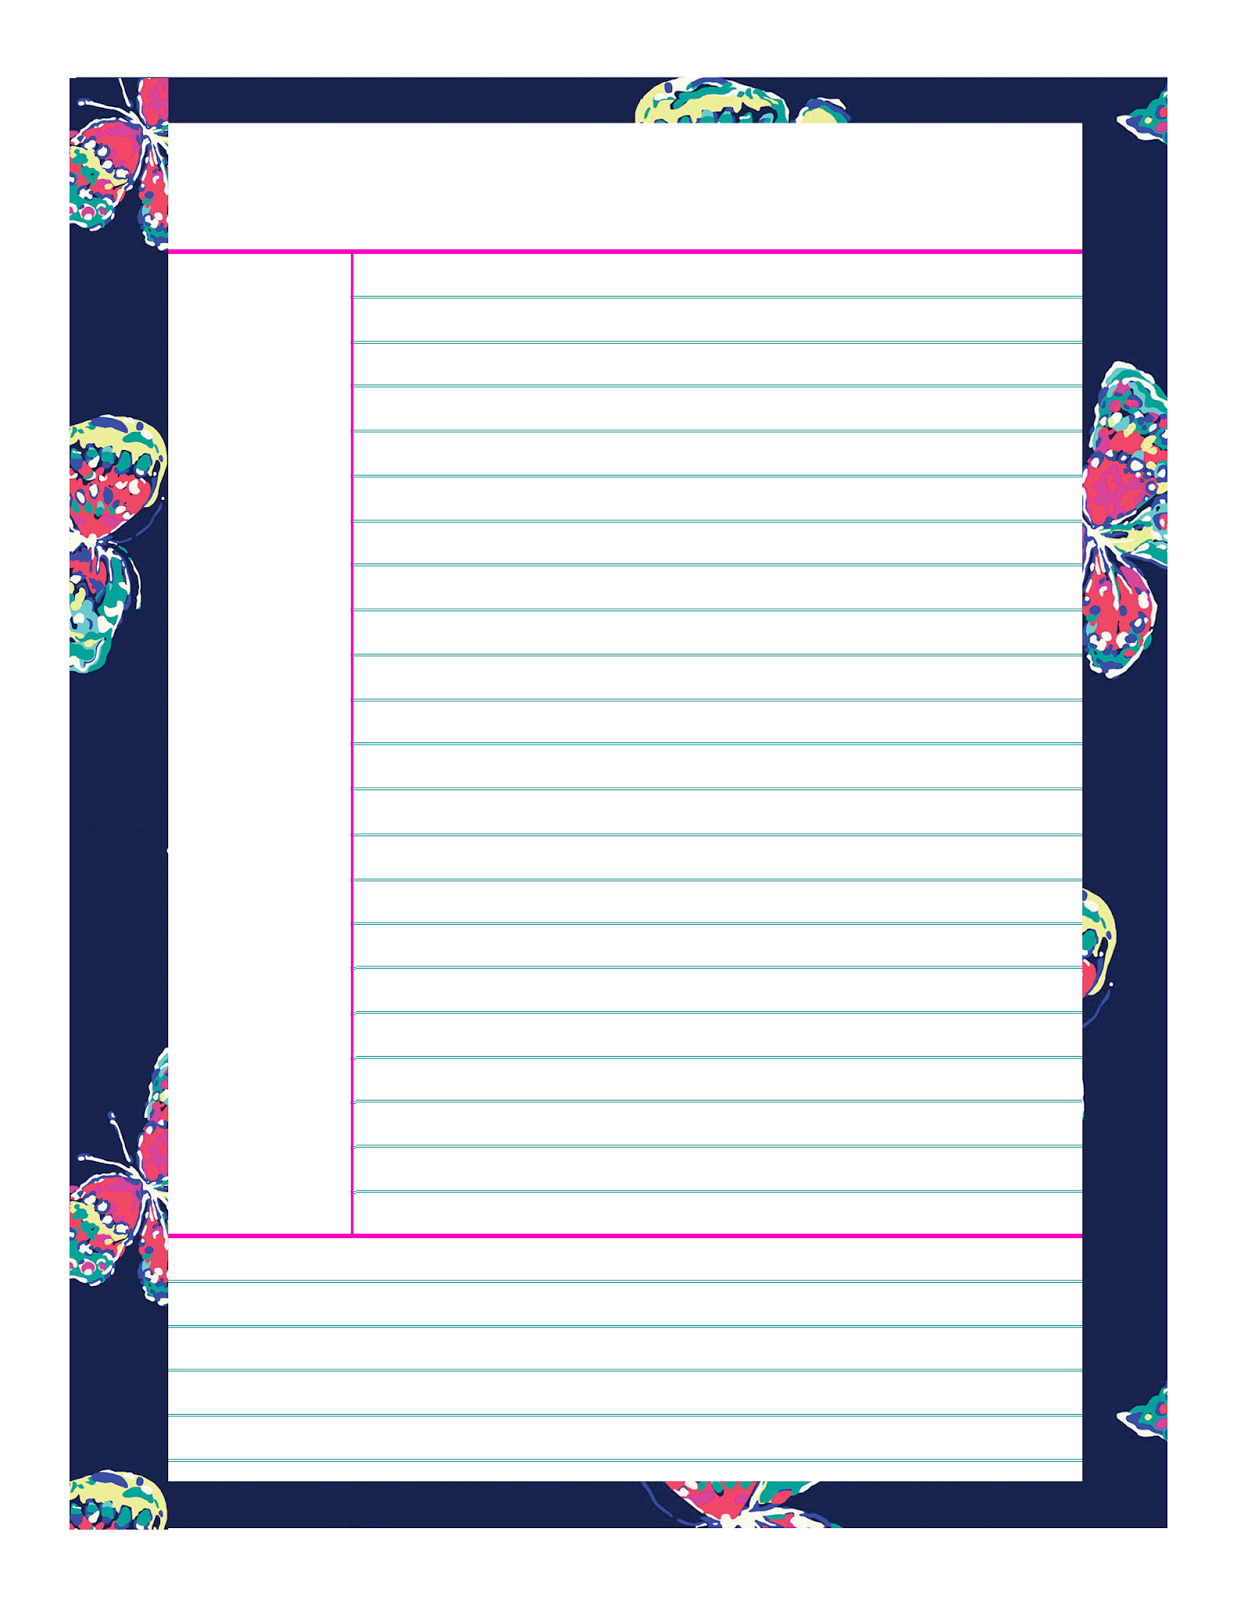 Notecard Template For Term Papers Callexponentially